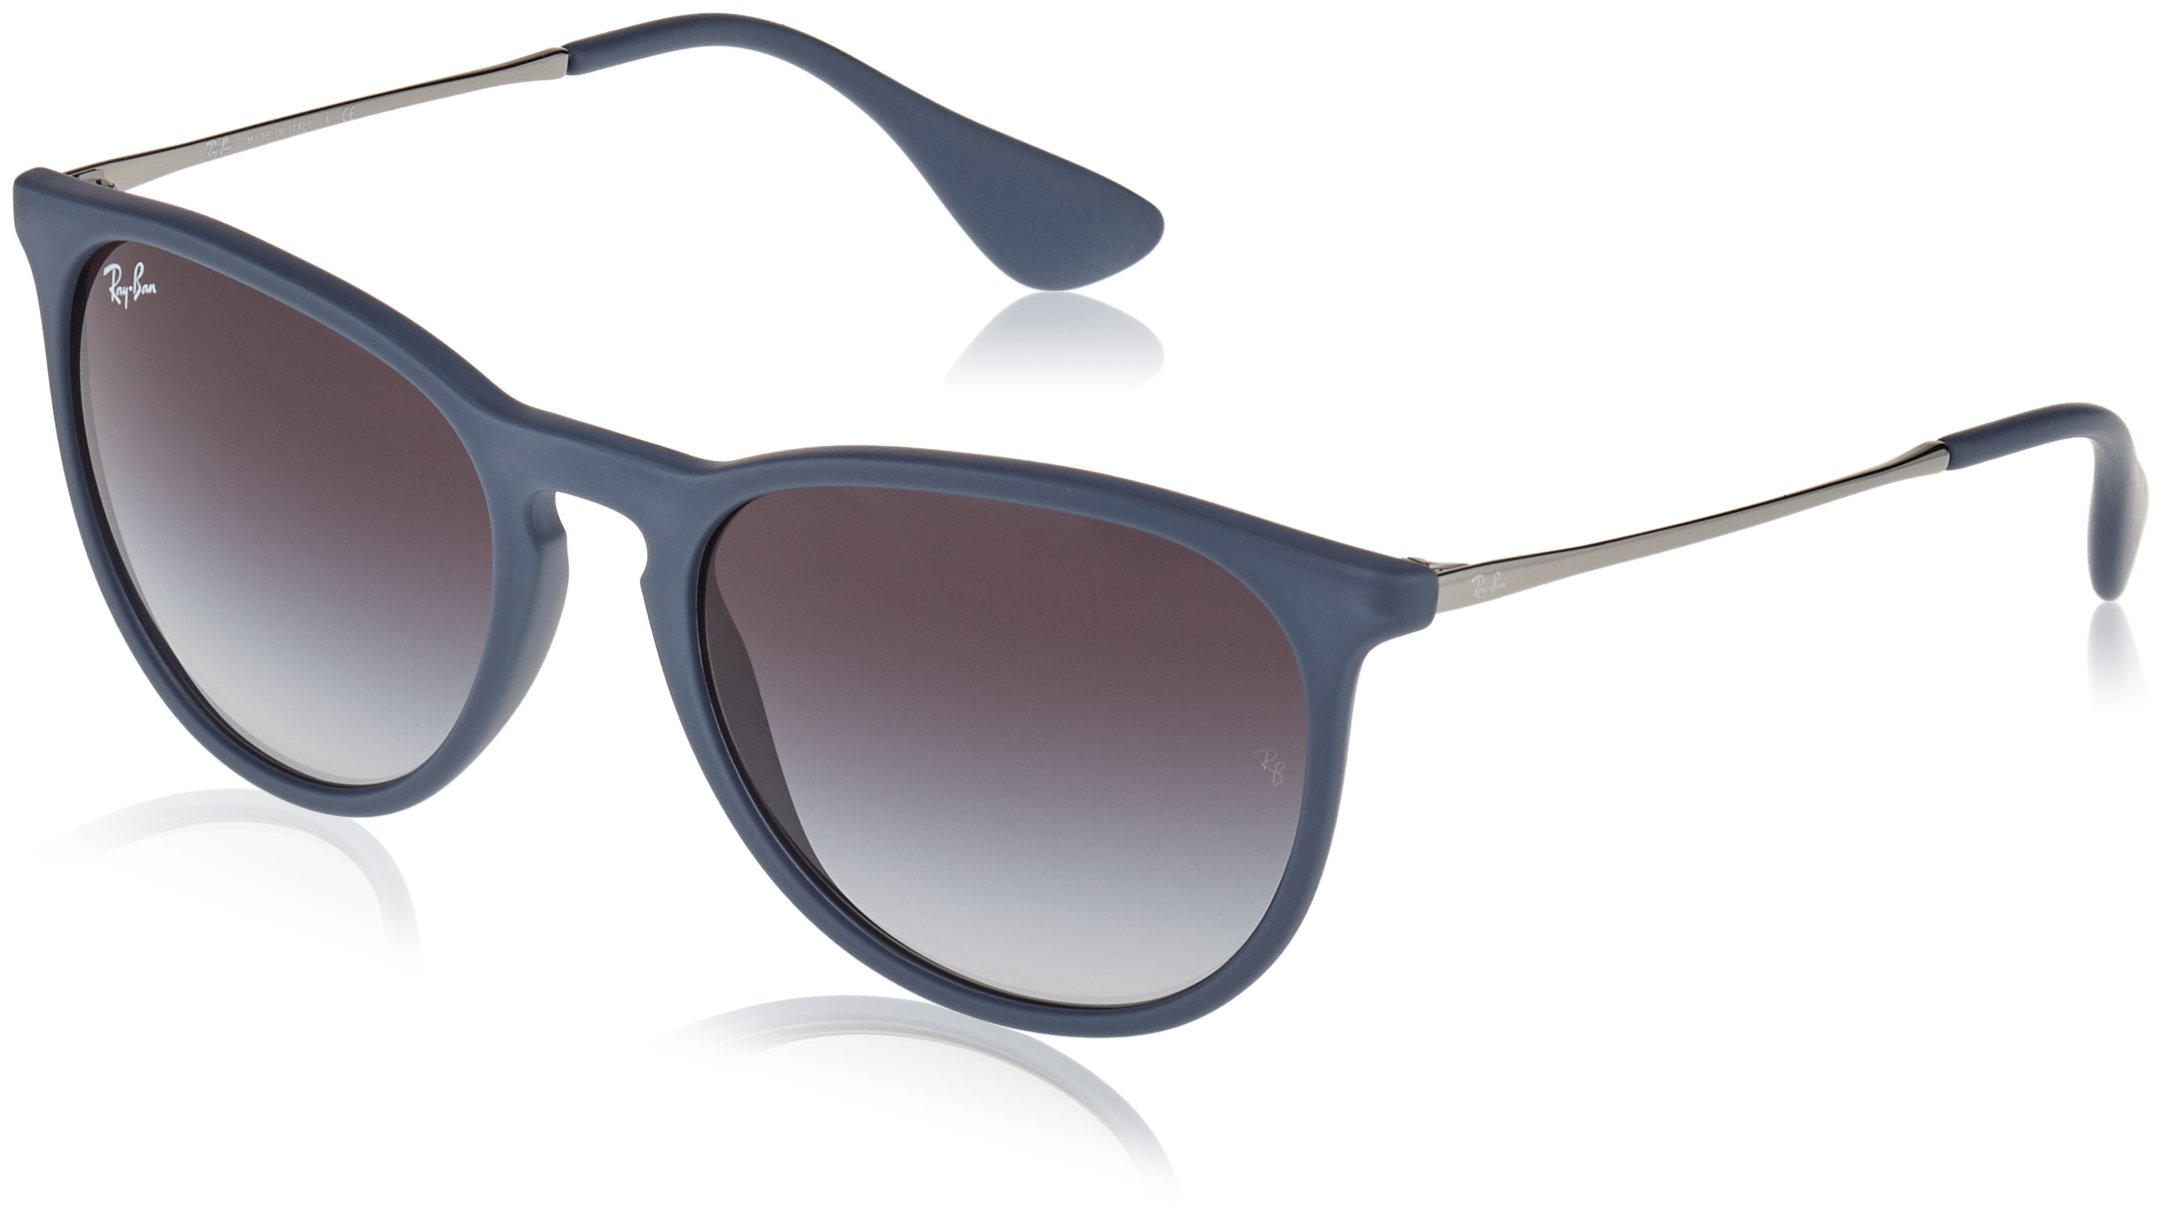 Ray-Ban ERIKA - RUBBER BLUE Frame GREY GRADIENT Lenses 54mm Non-Polarized